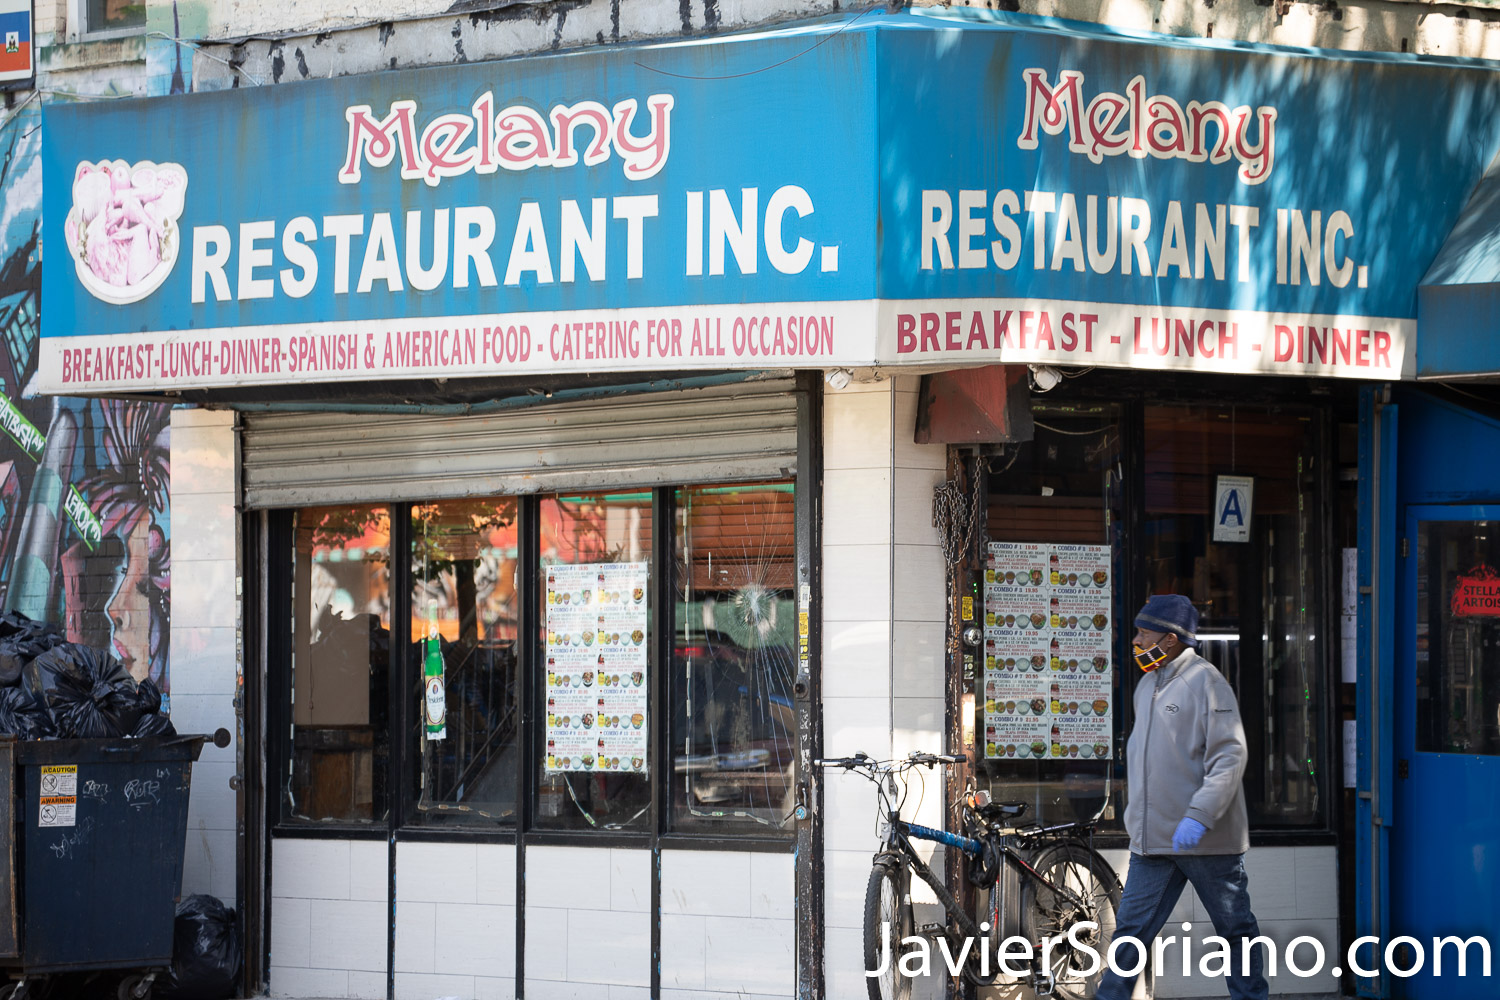 Thursday, May 21, 2020. Brooklyn, New York City - Dominican restaurant. Melany. Jueves 21 de mayo de 2020. Brooklyn, ciudad de Nueva York - Restaurante dominicano. Melany. Photo by Javier Soriano/www.JavierSoriano.com